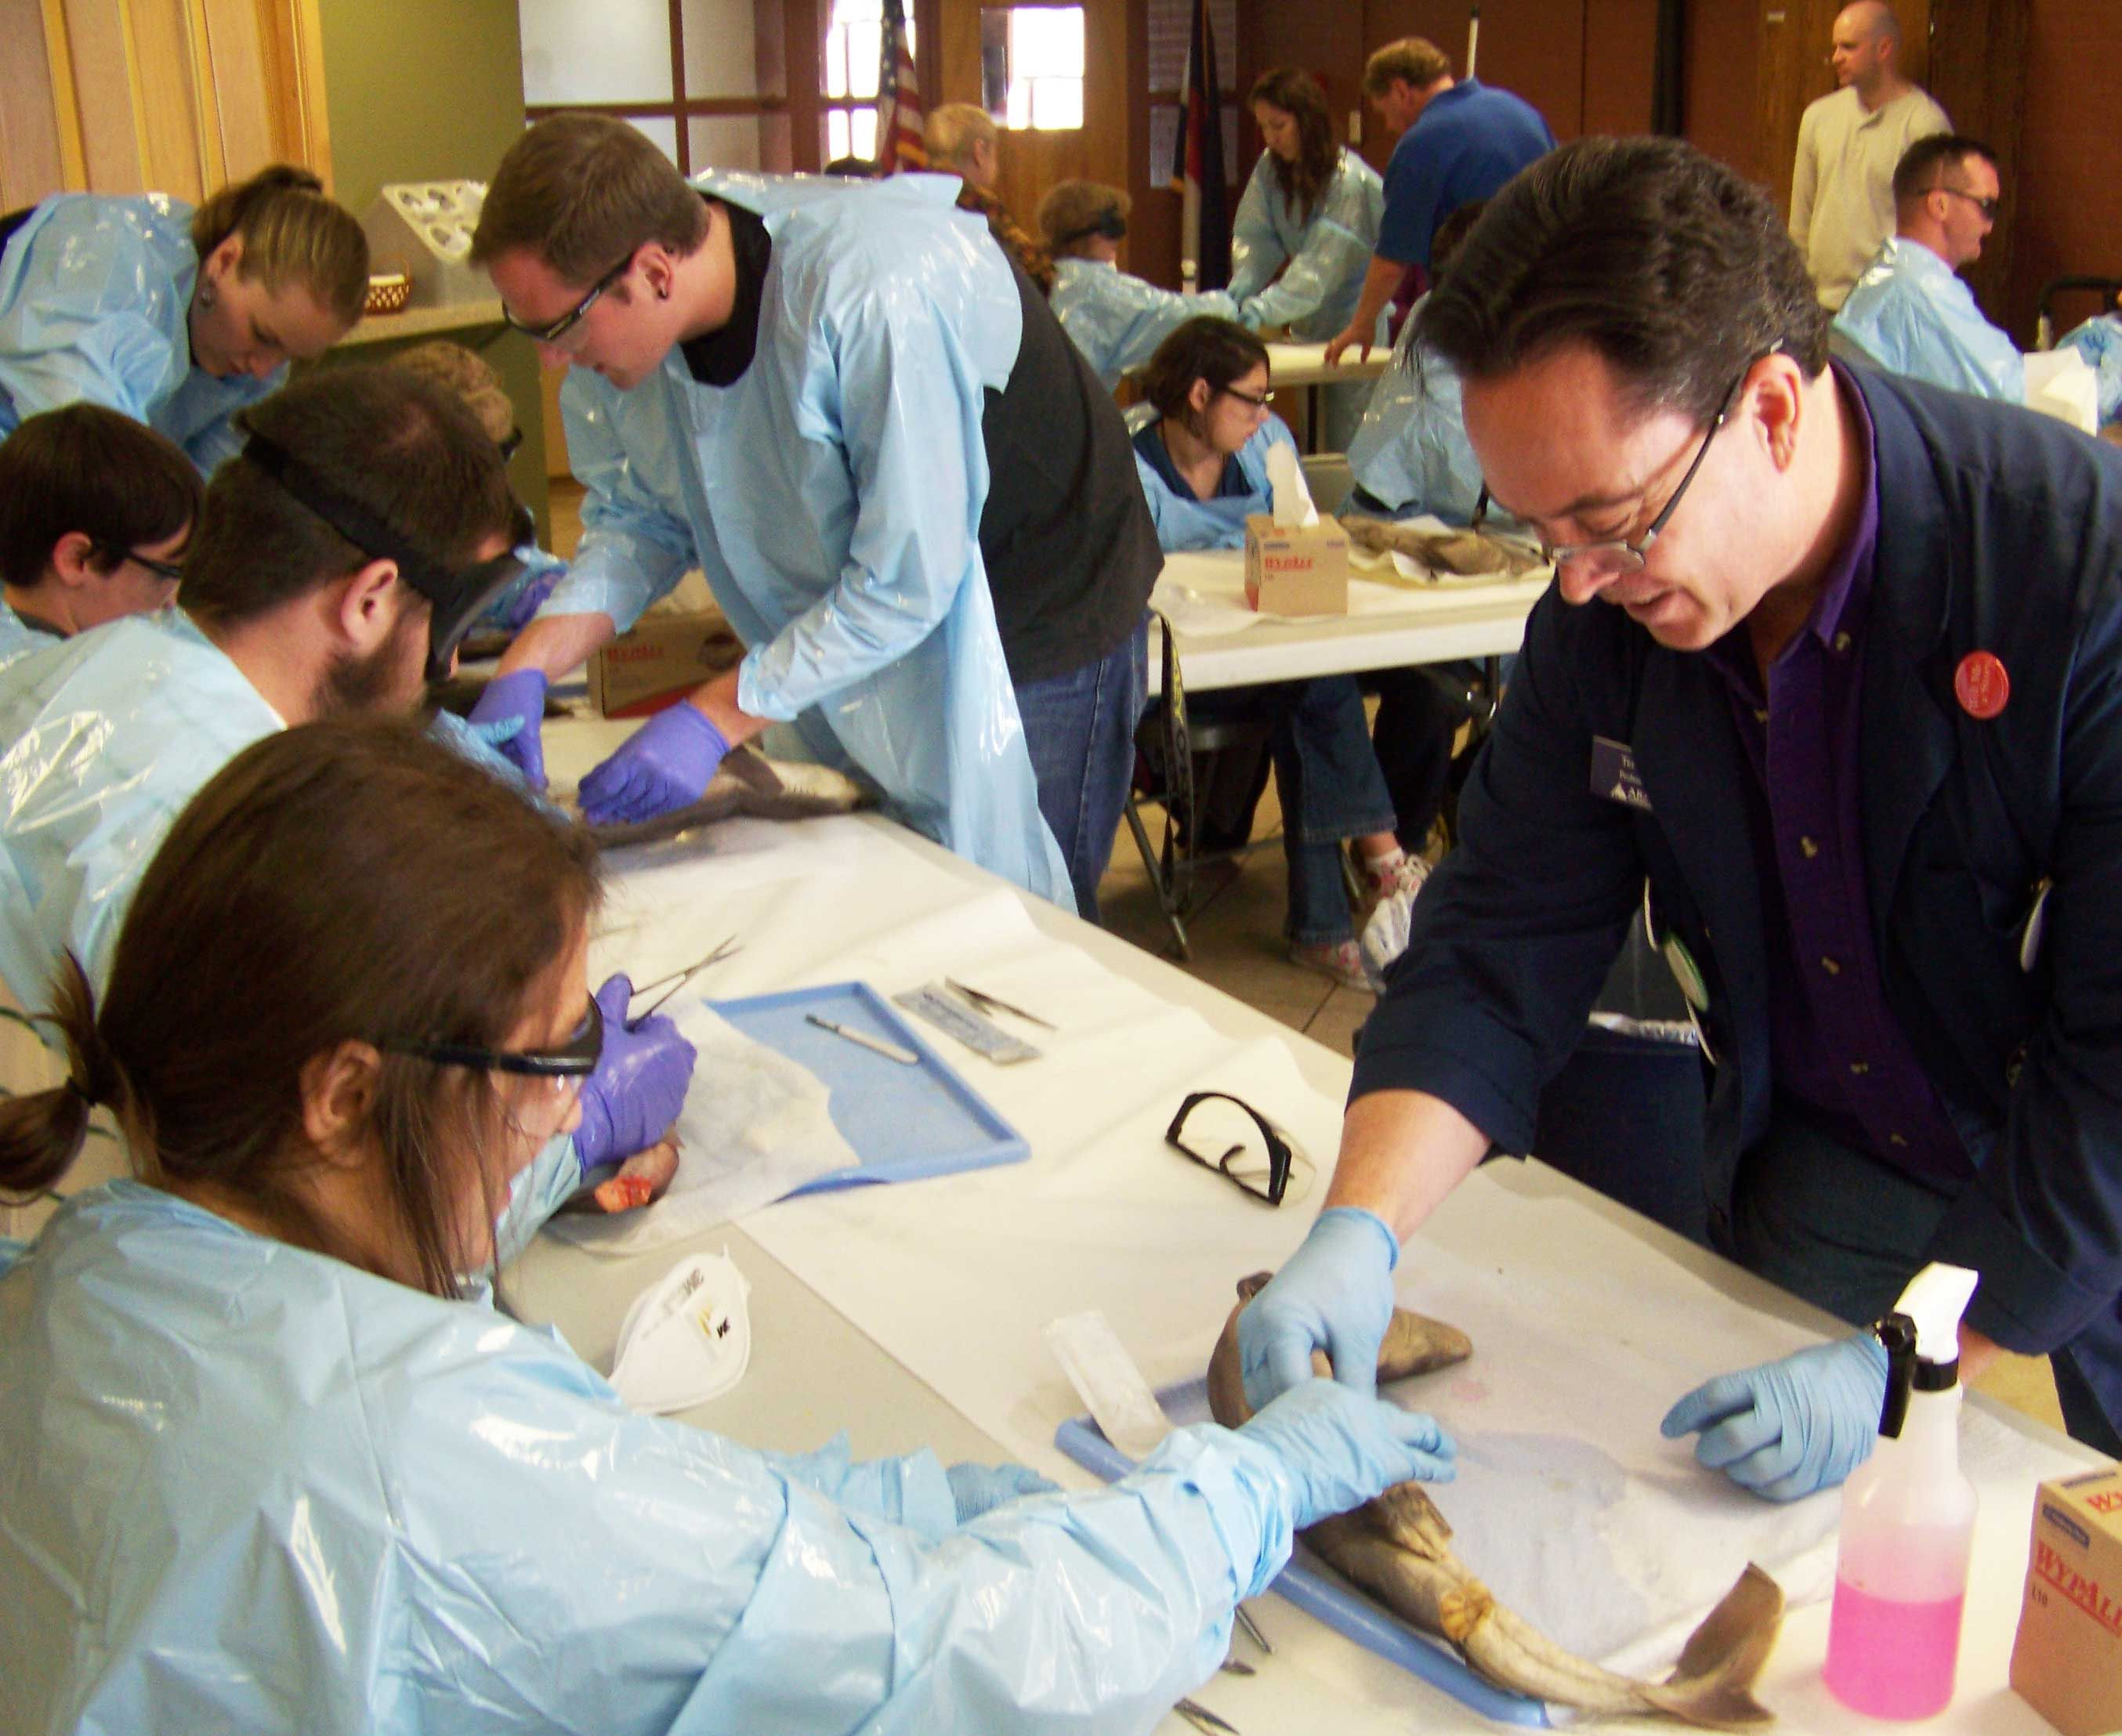 Biology Professor Terry Harrison Dissects Sharks With Students At